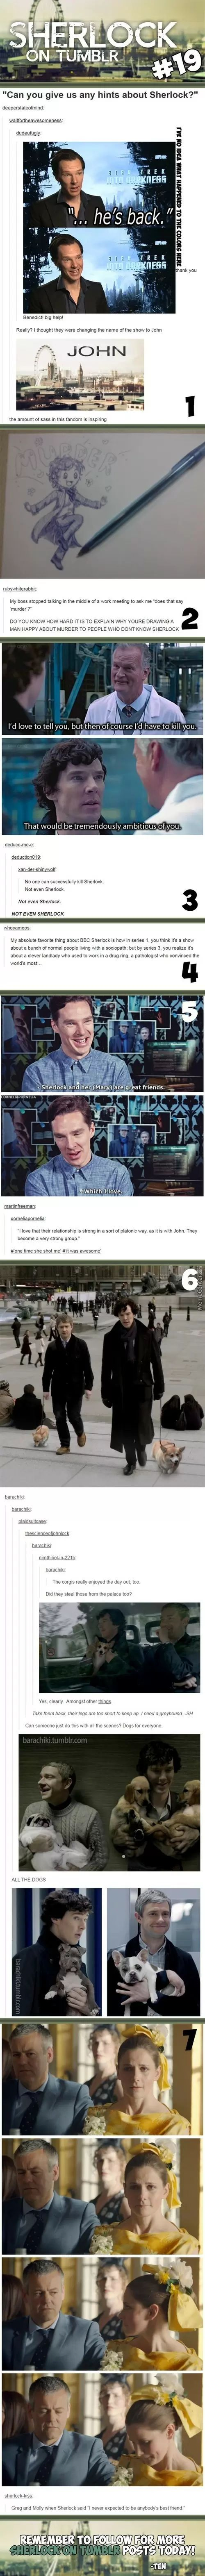 Sherlock On Tumblr #19